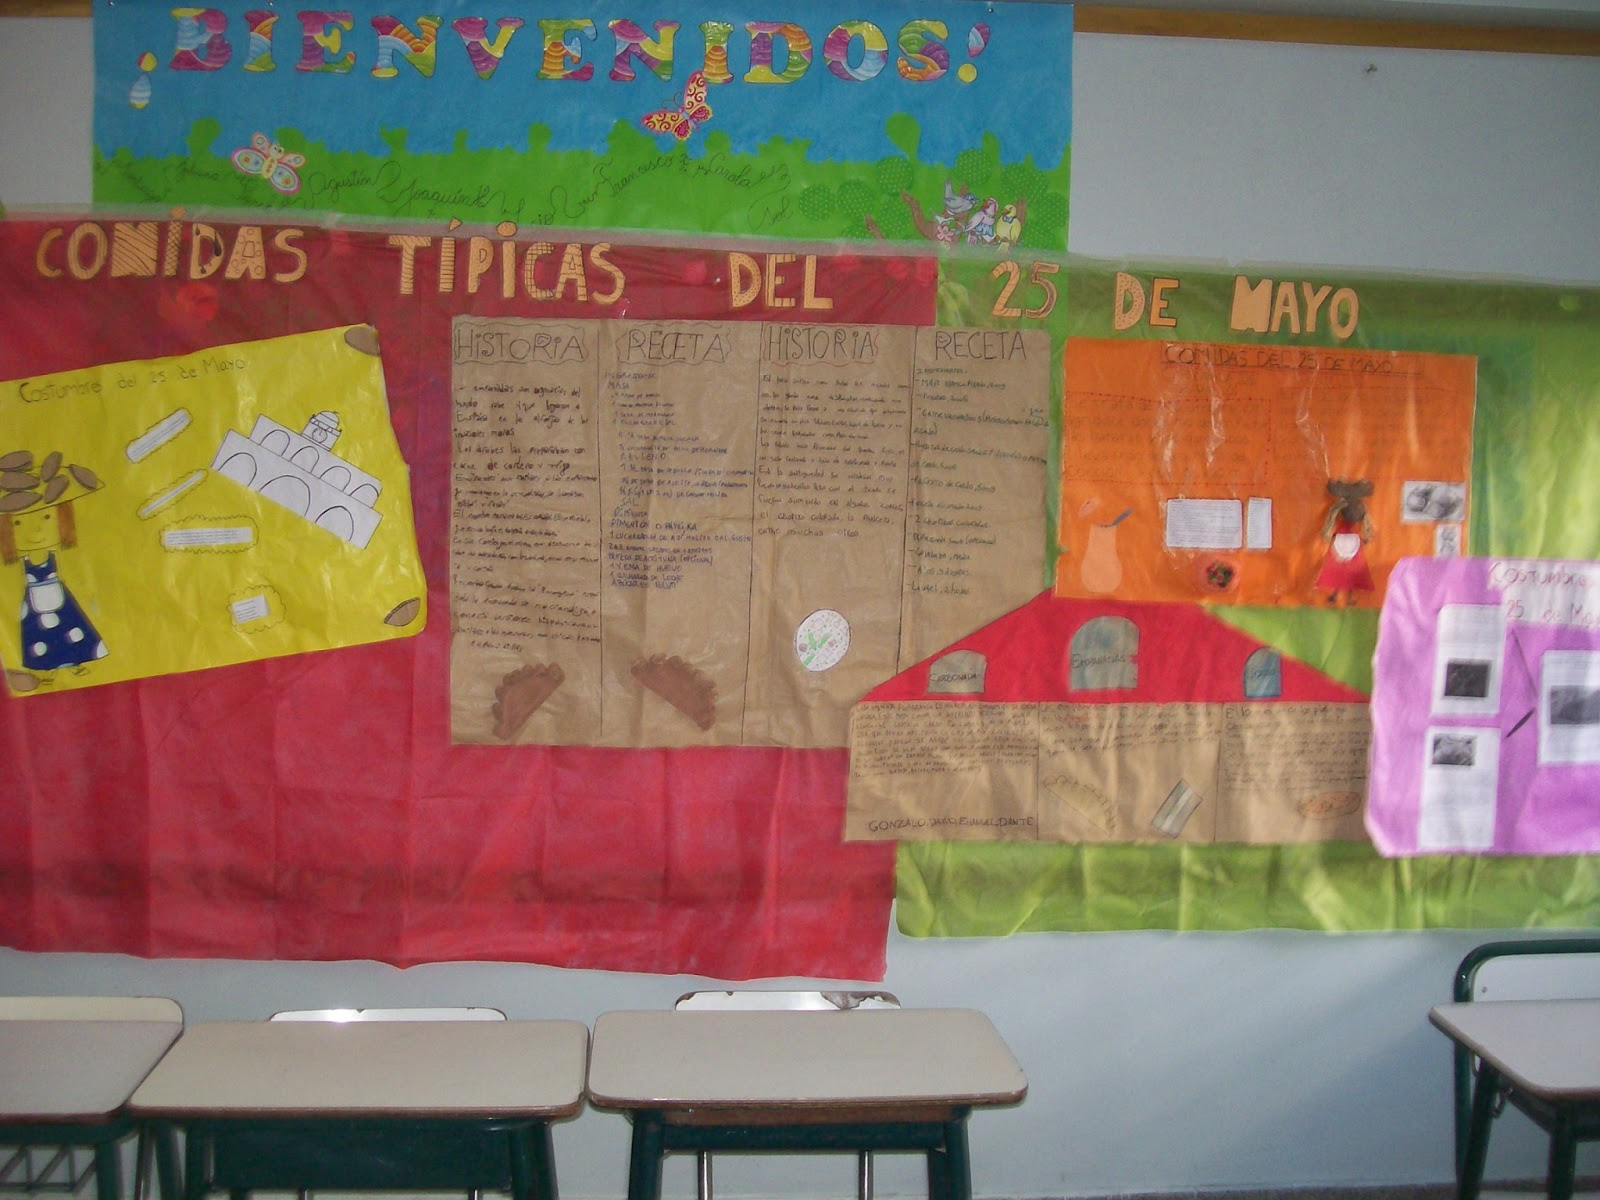 Decoracion escolar del 25 de mayo escuela del sur 2013 25 for Decoracion 25 de mayo nivel inicial